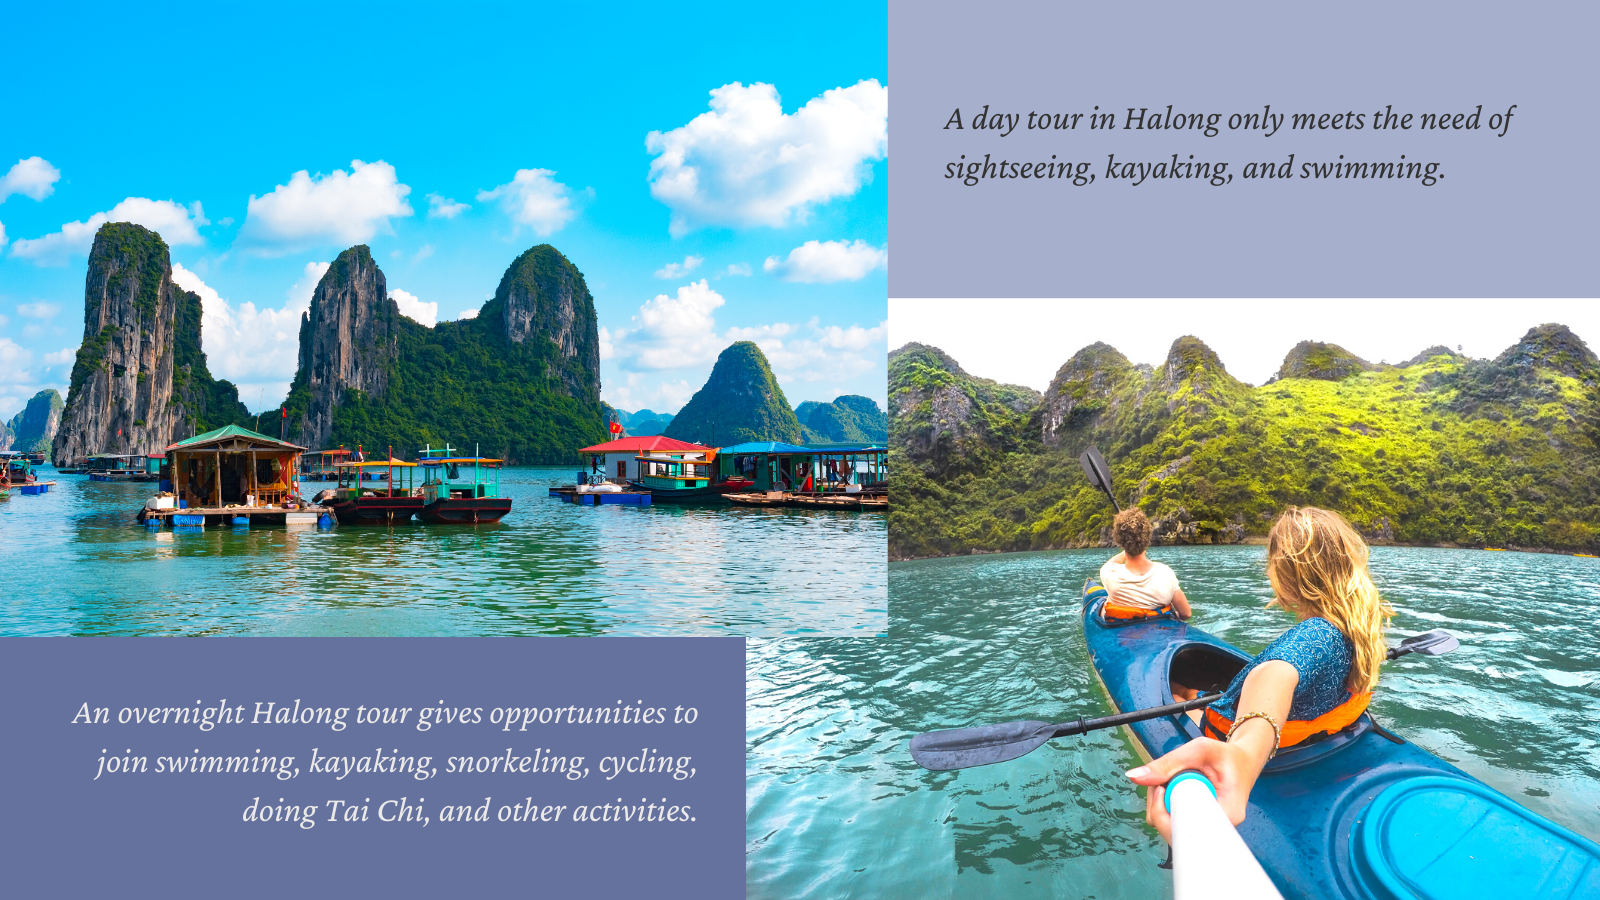 Differences between a Halong Bay day trip and overnight tour